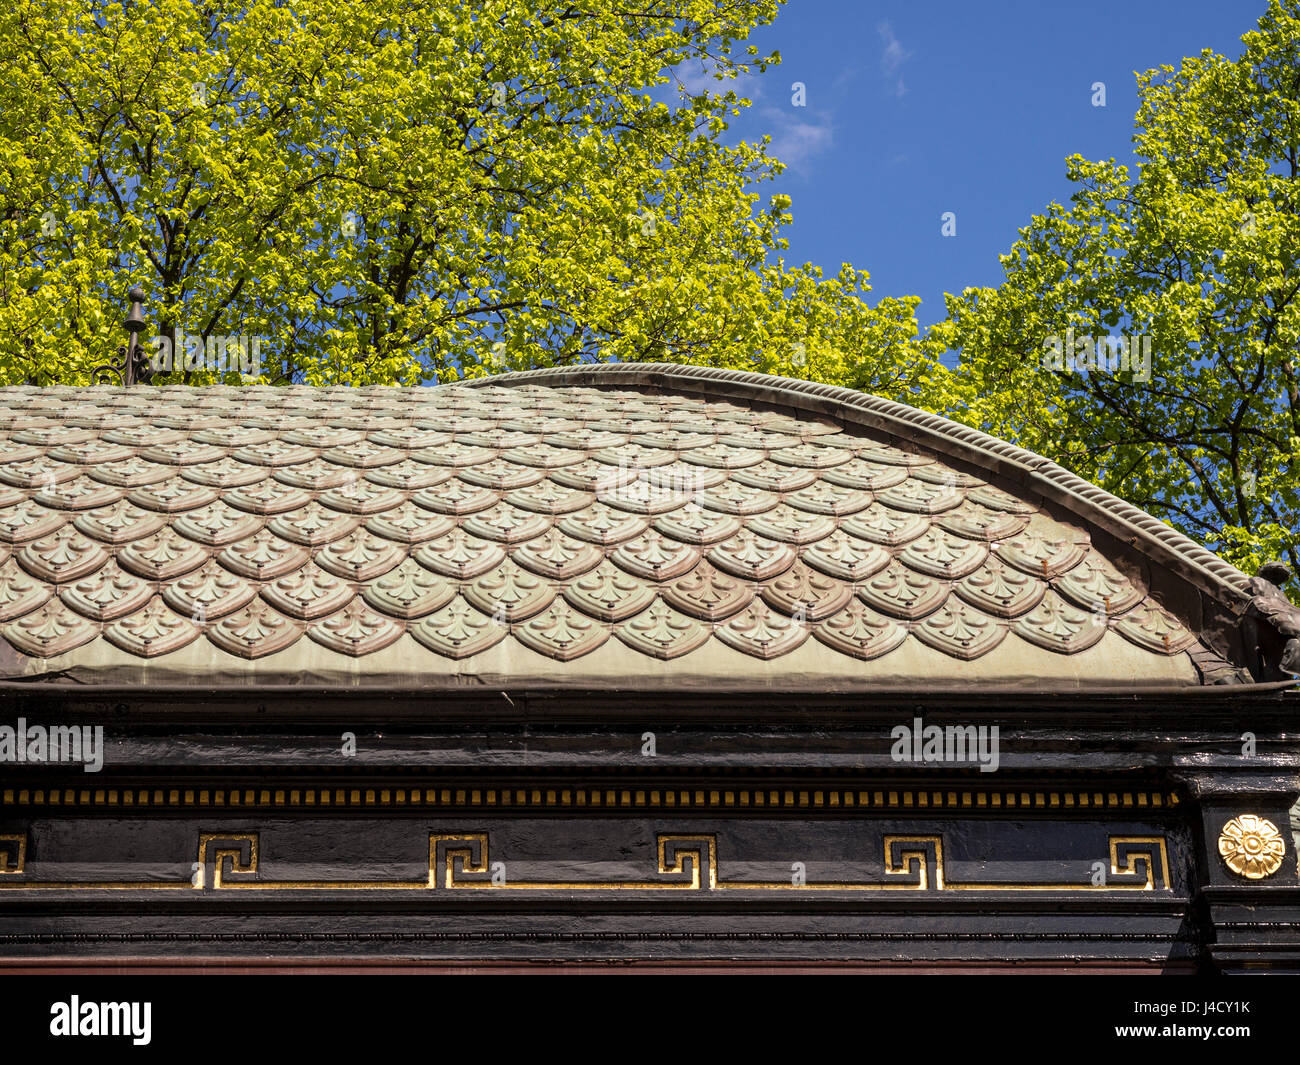 Détail du toit, le Royal Pump Room Museum, Harrogate, Royaume-Uni. Photo Stock